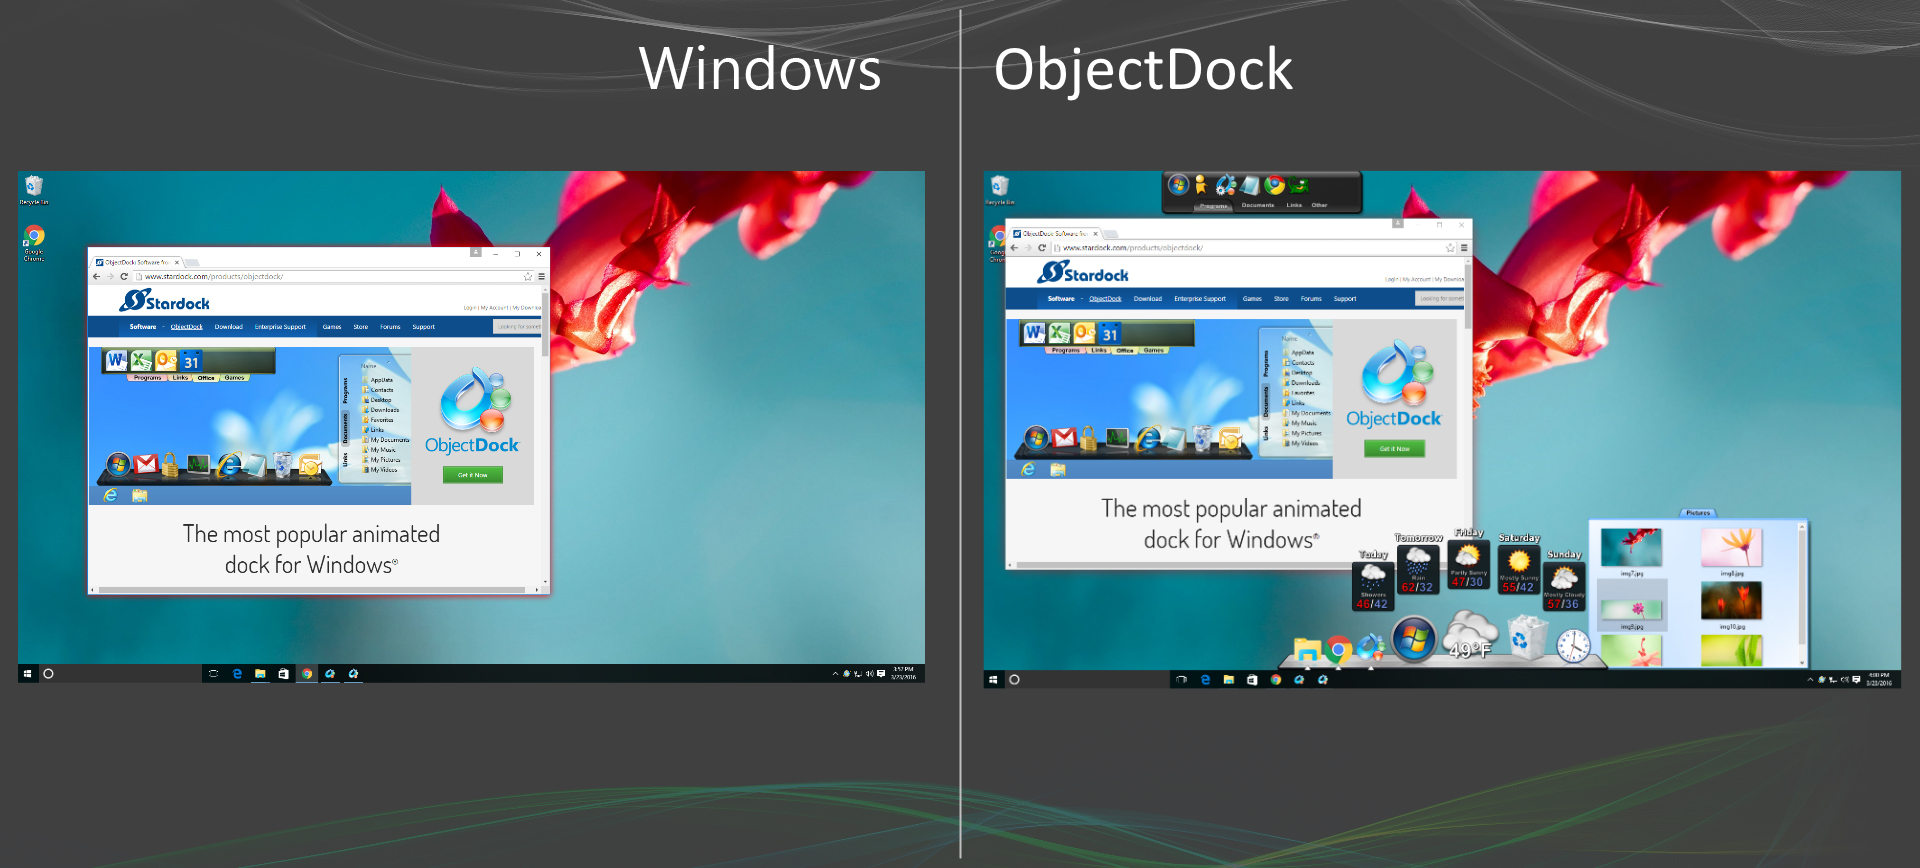 Objectdock Software From Stardock